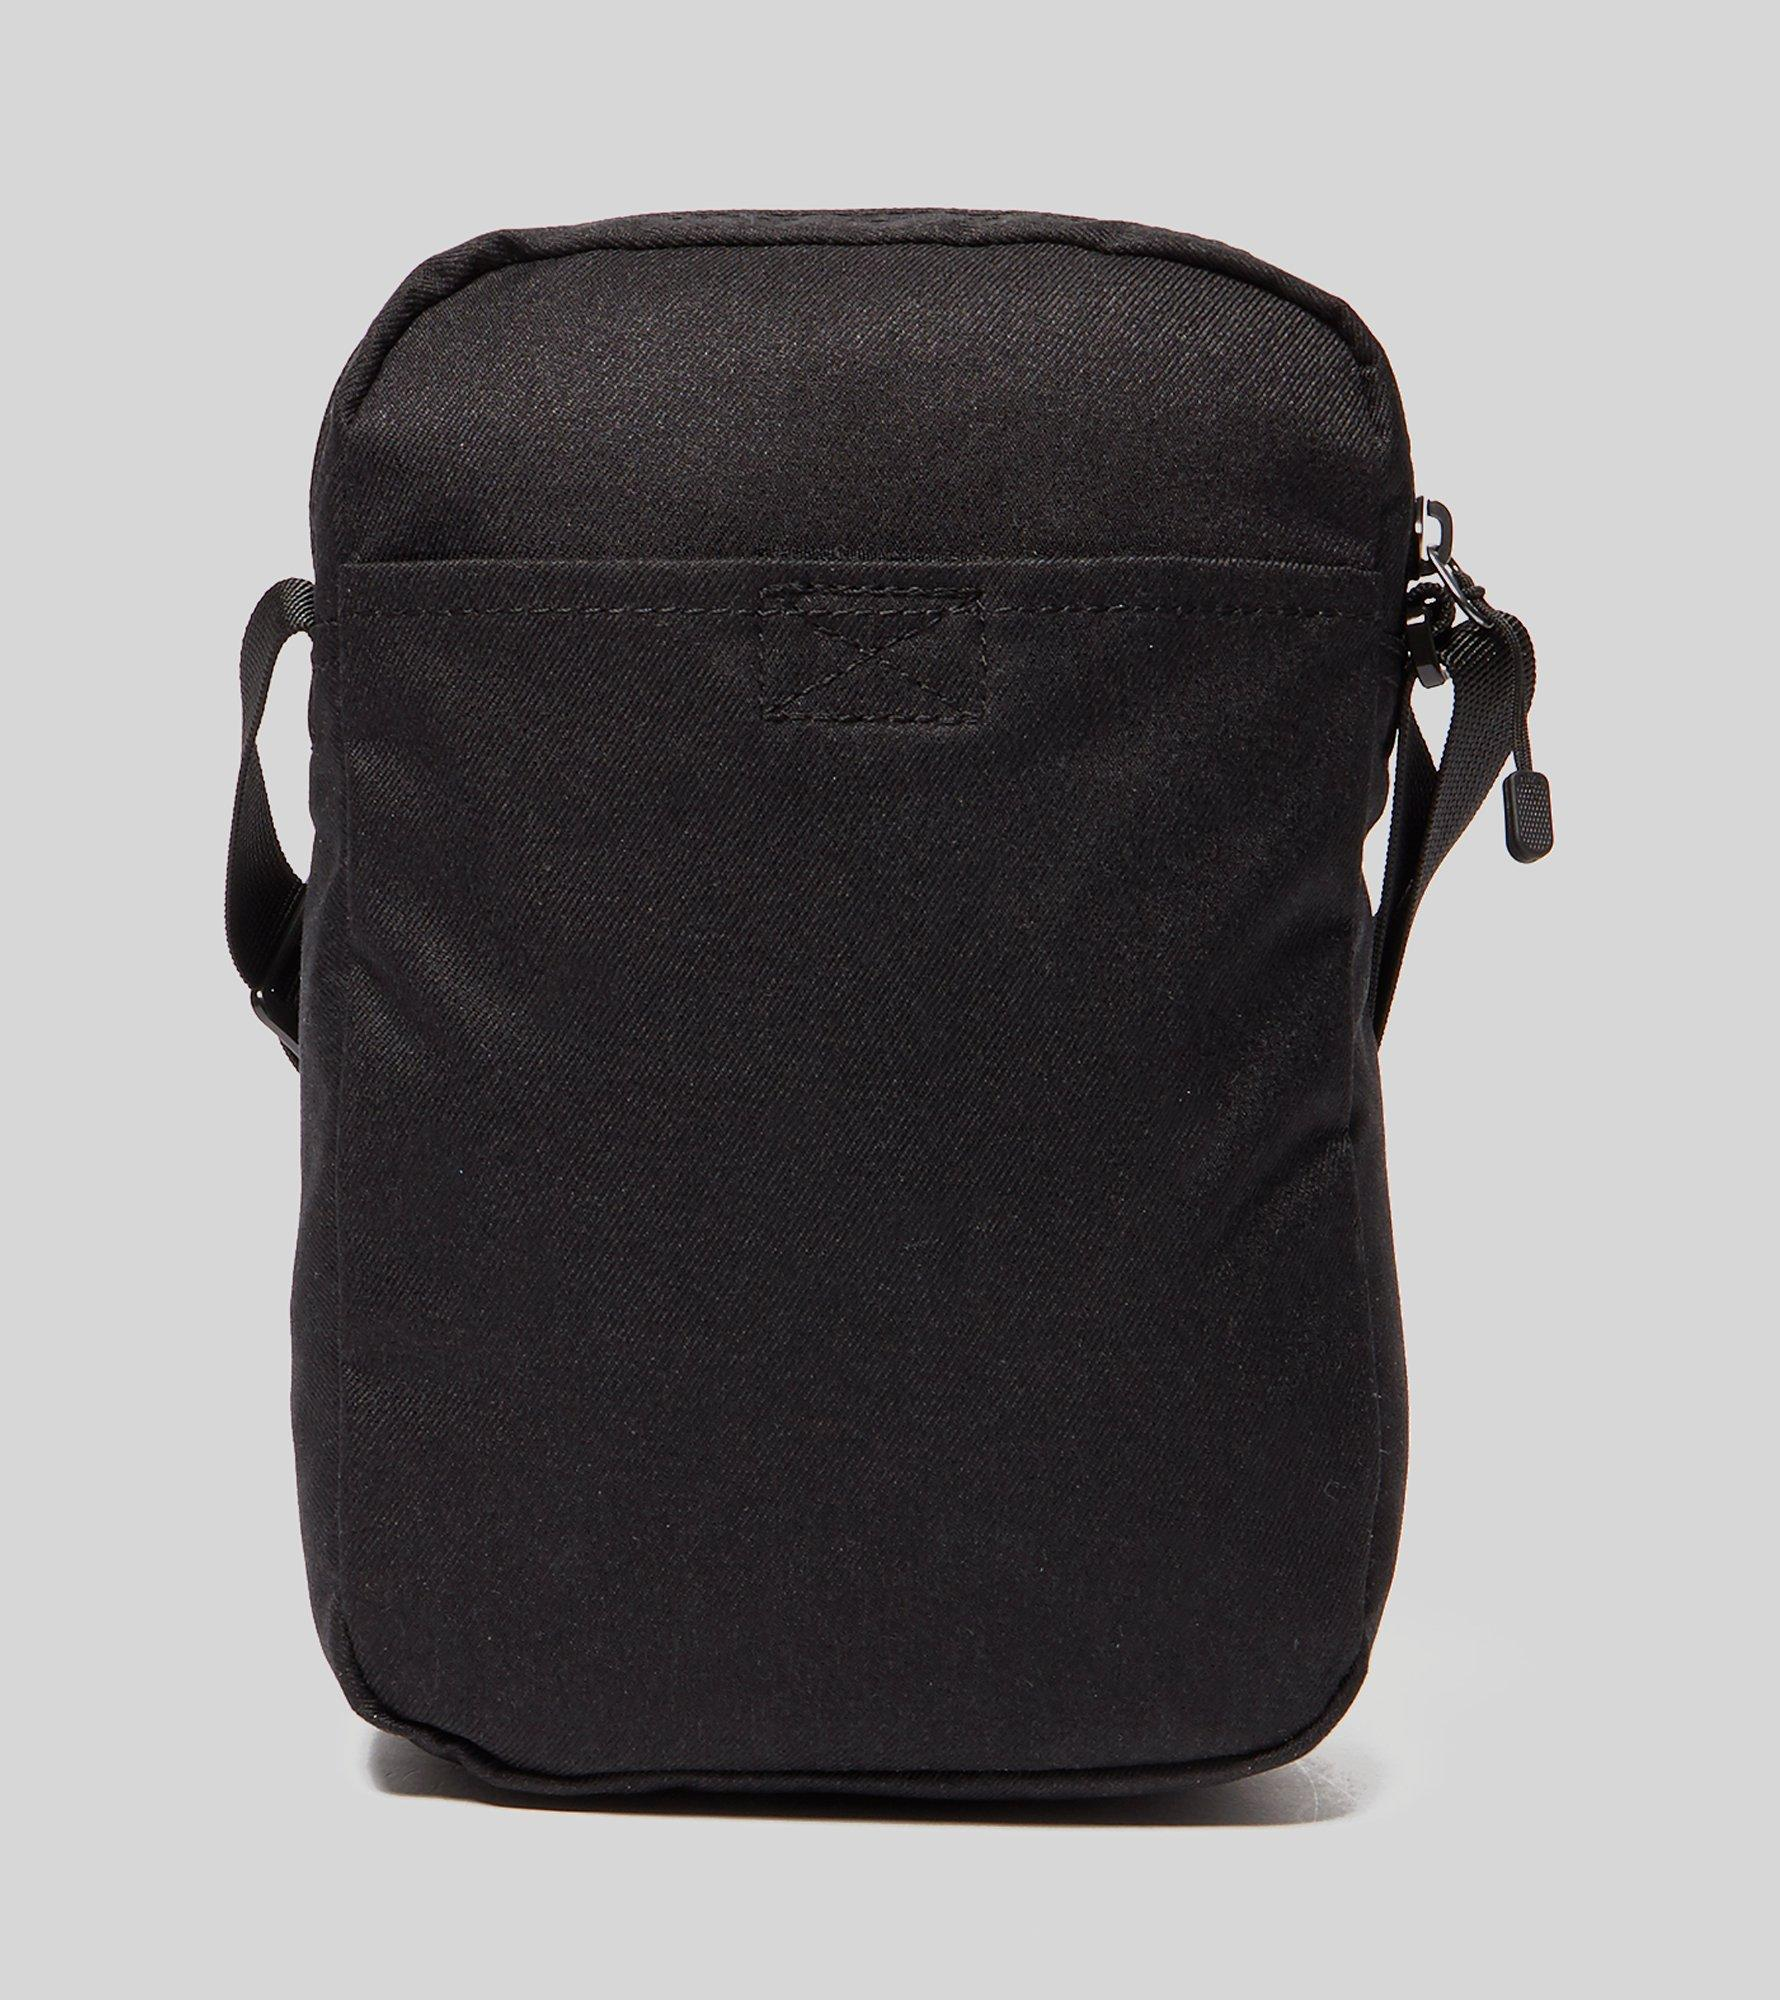 Lyst Nike Core Small Crossbody Bag In Black For Men